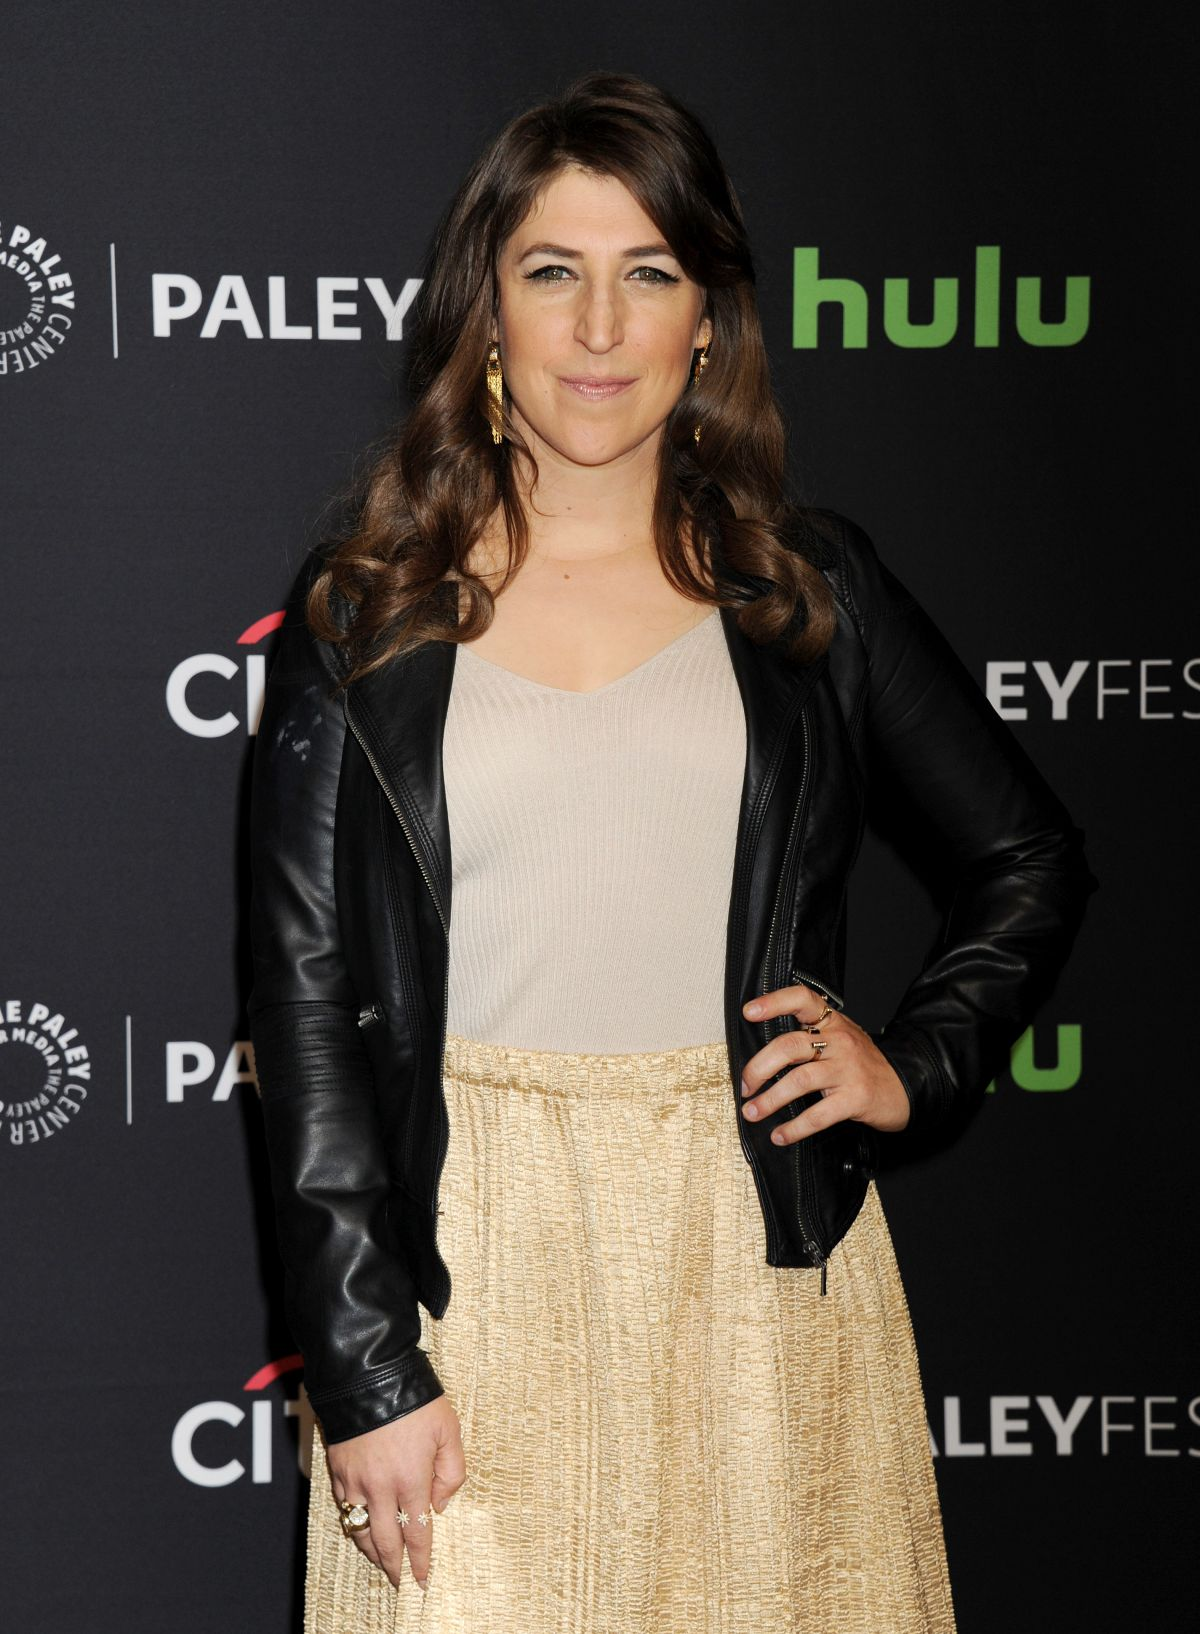 MAYIM BIALIK at 33rd Annual Paleyfest Los Angeles